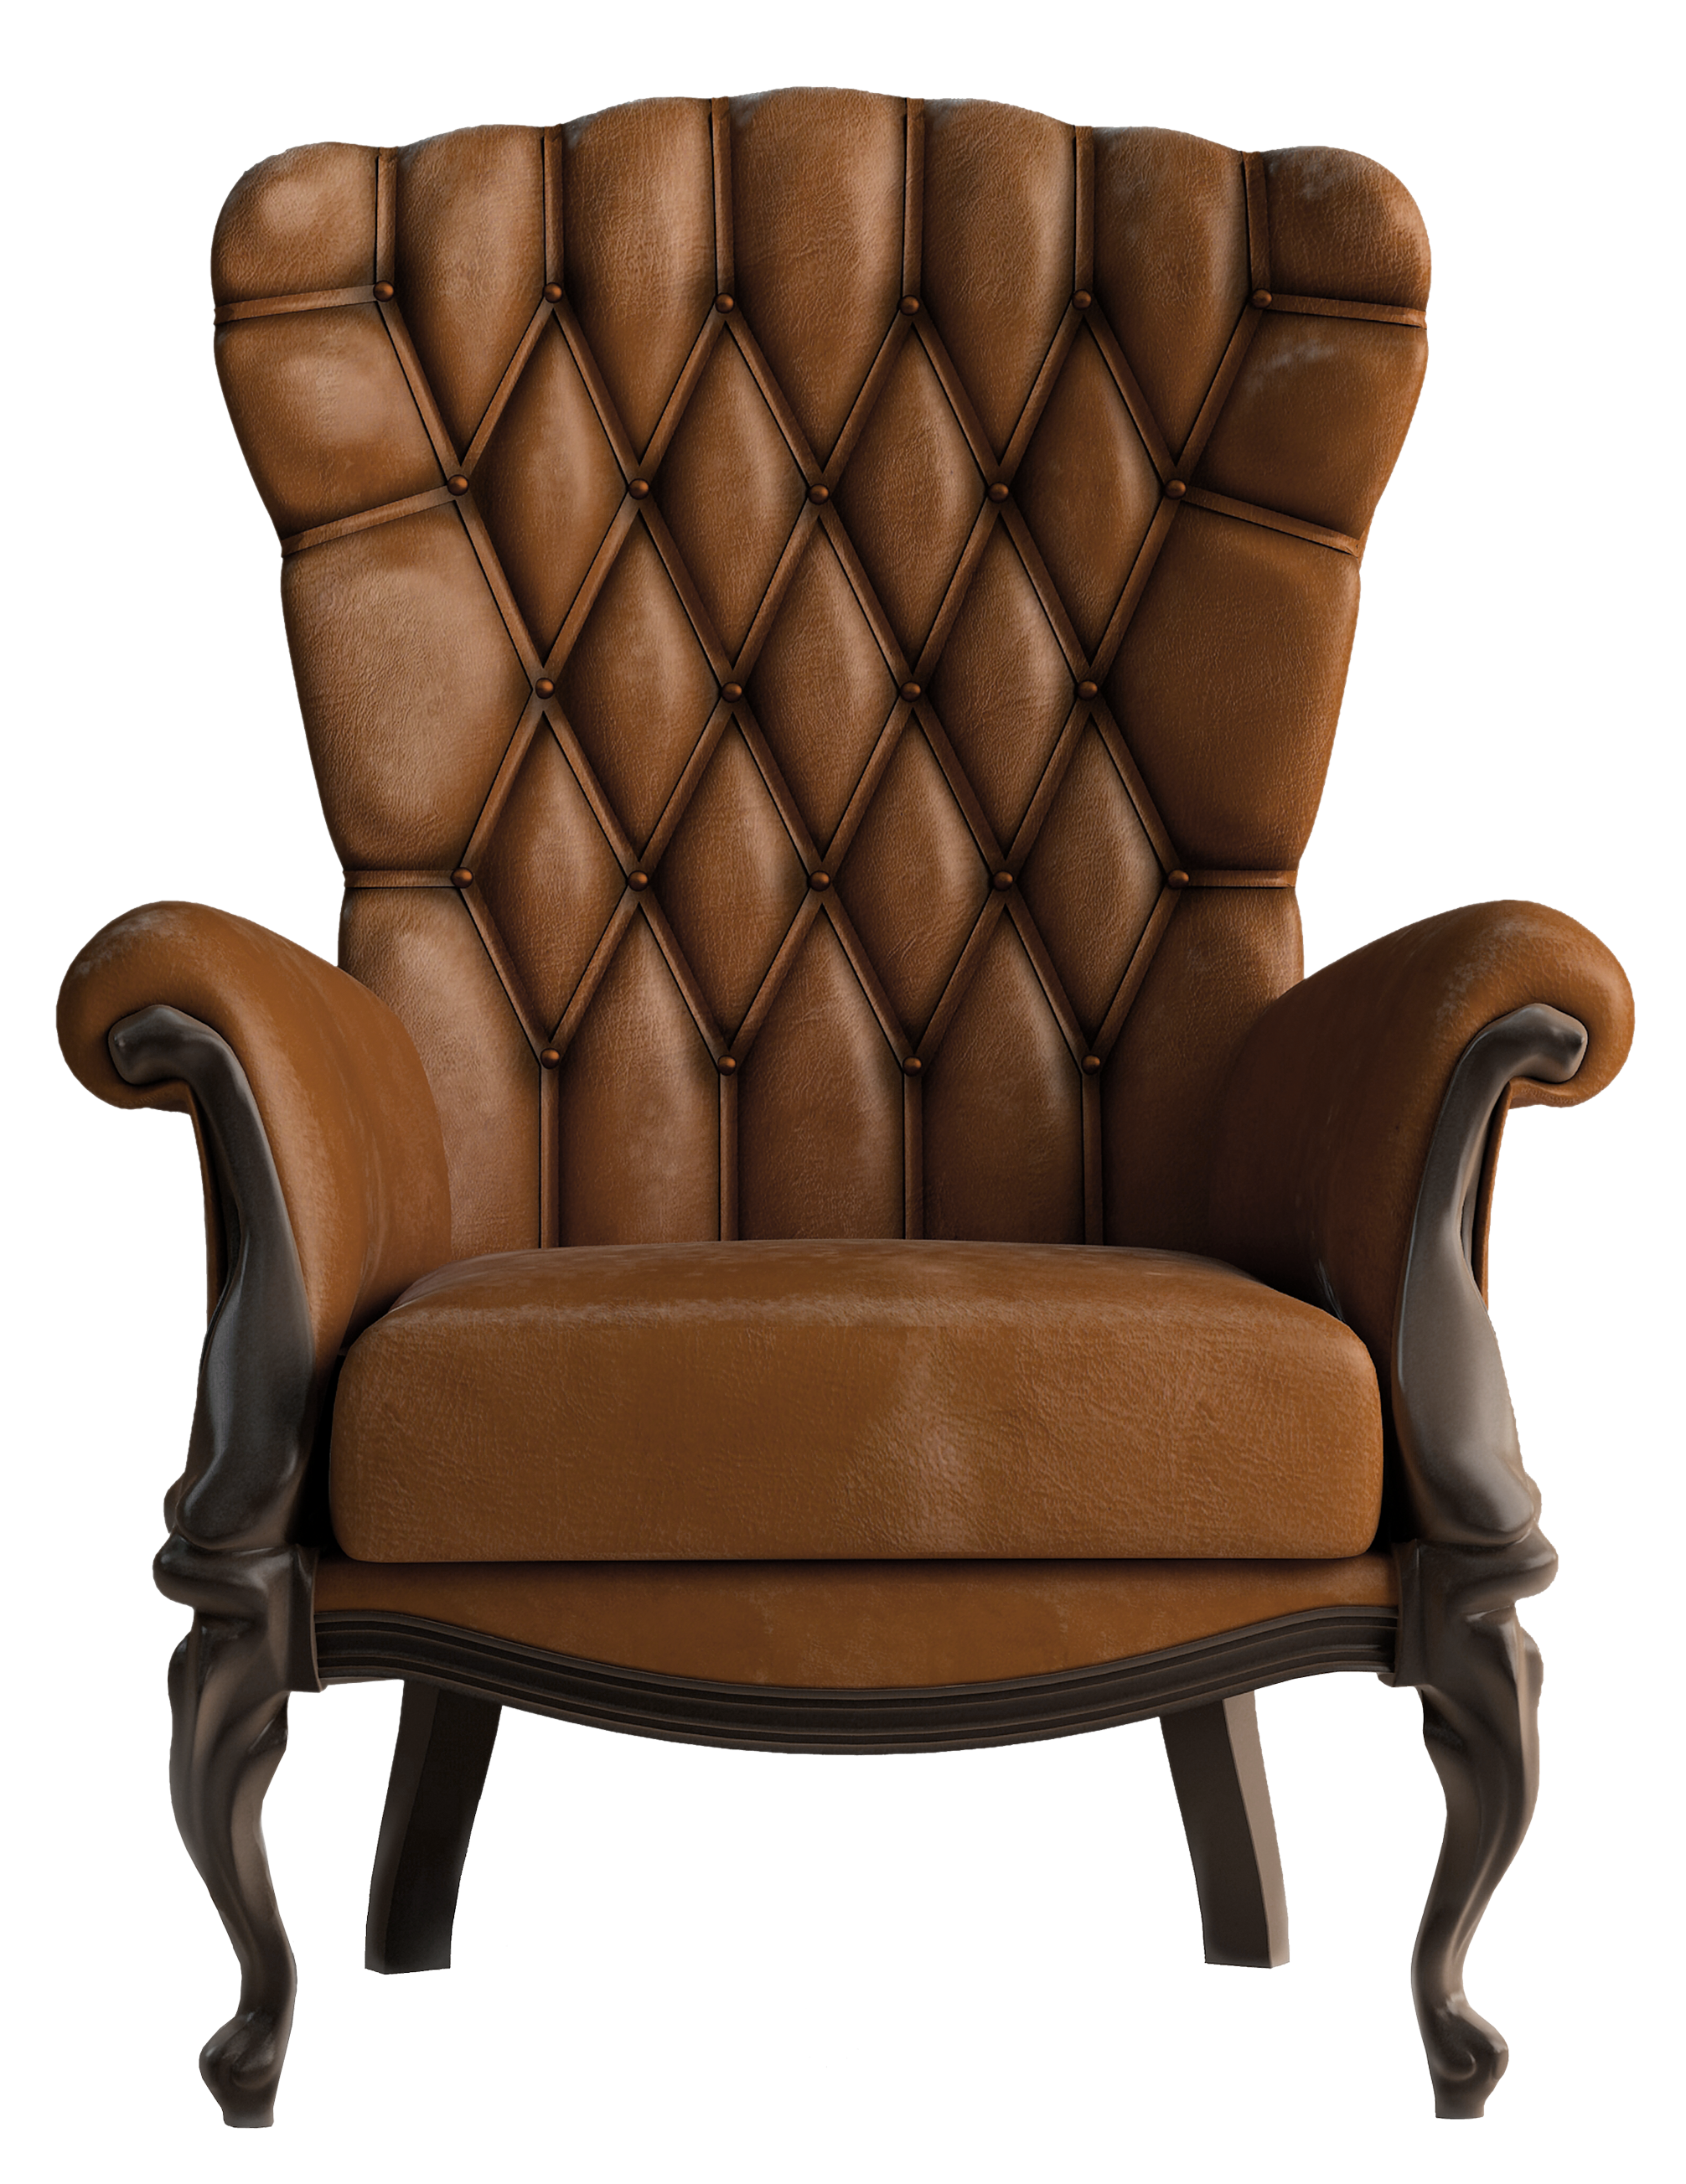 Transparent Brown Leather Chair PNG Clipart.